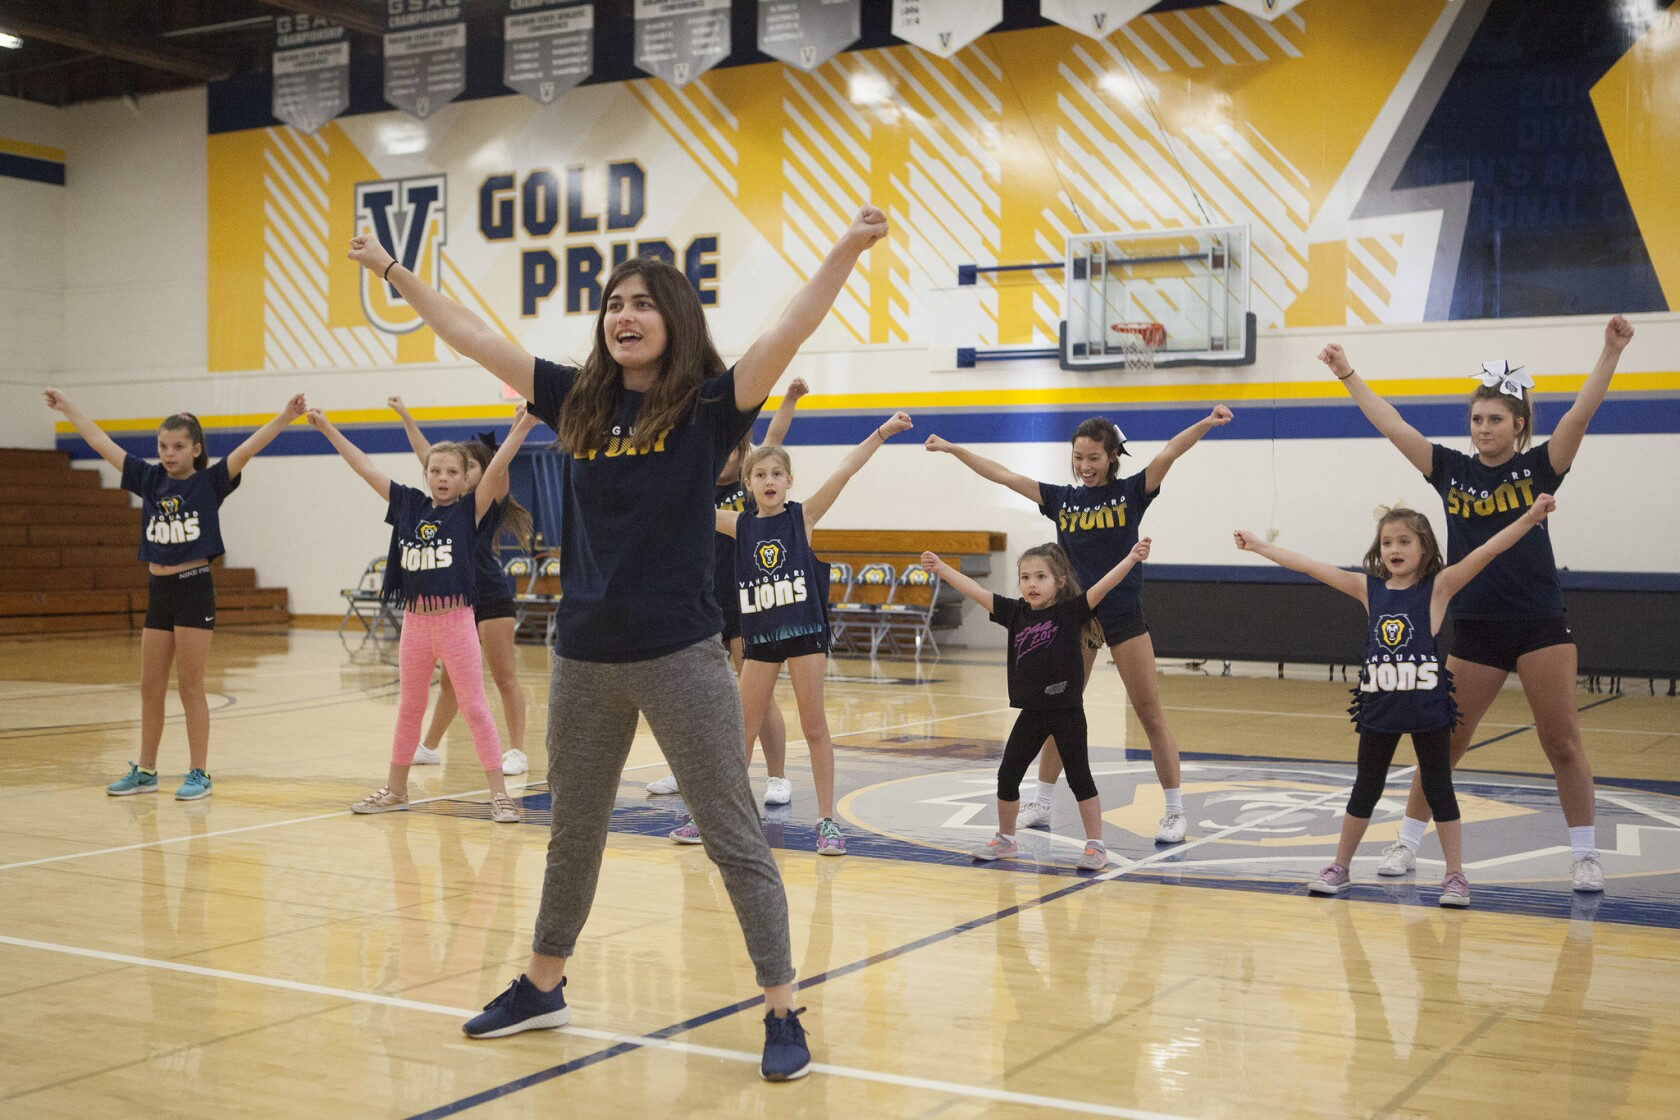 Vanguard University brings on the pep for local kids at